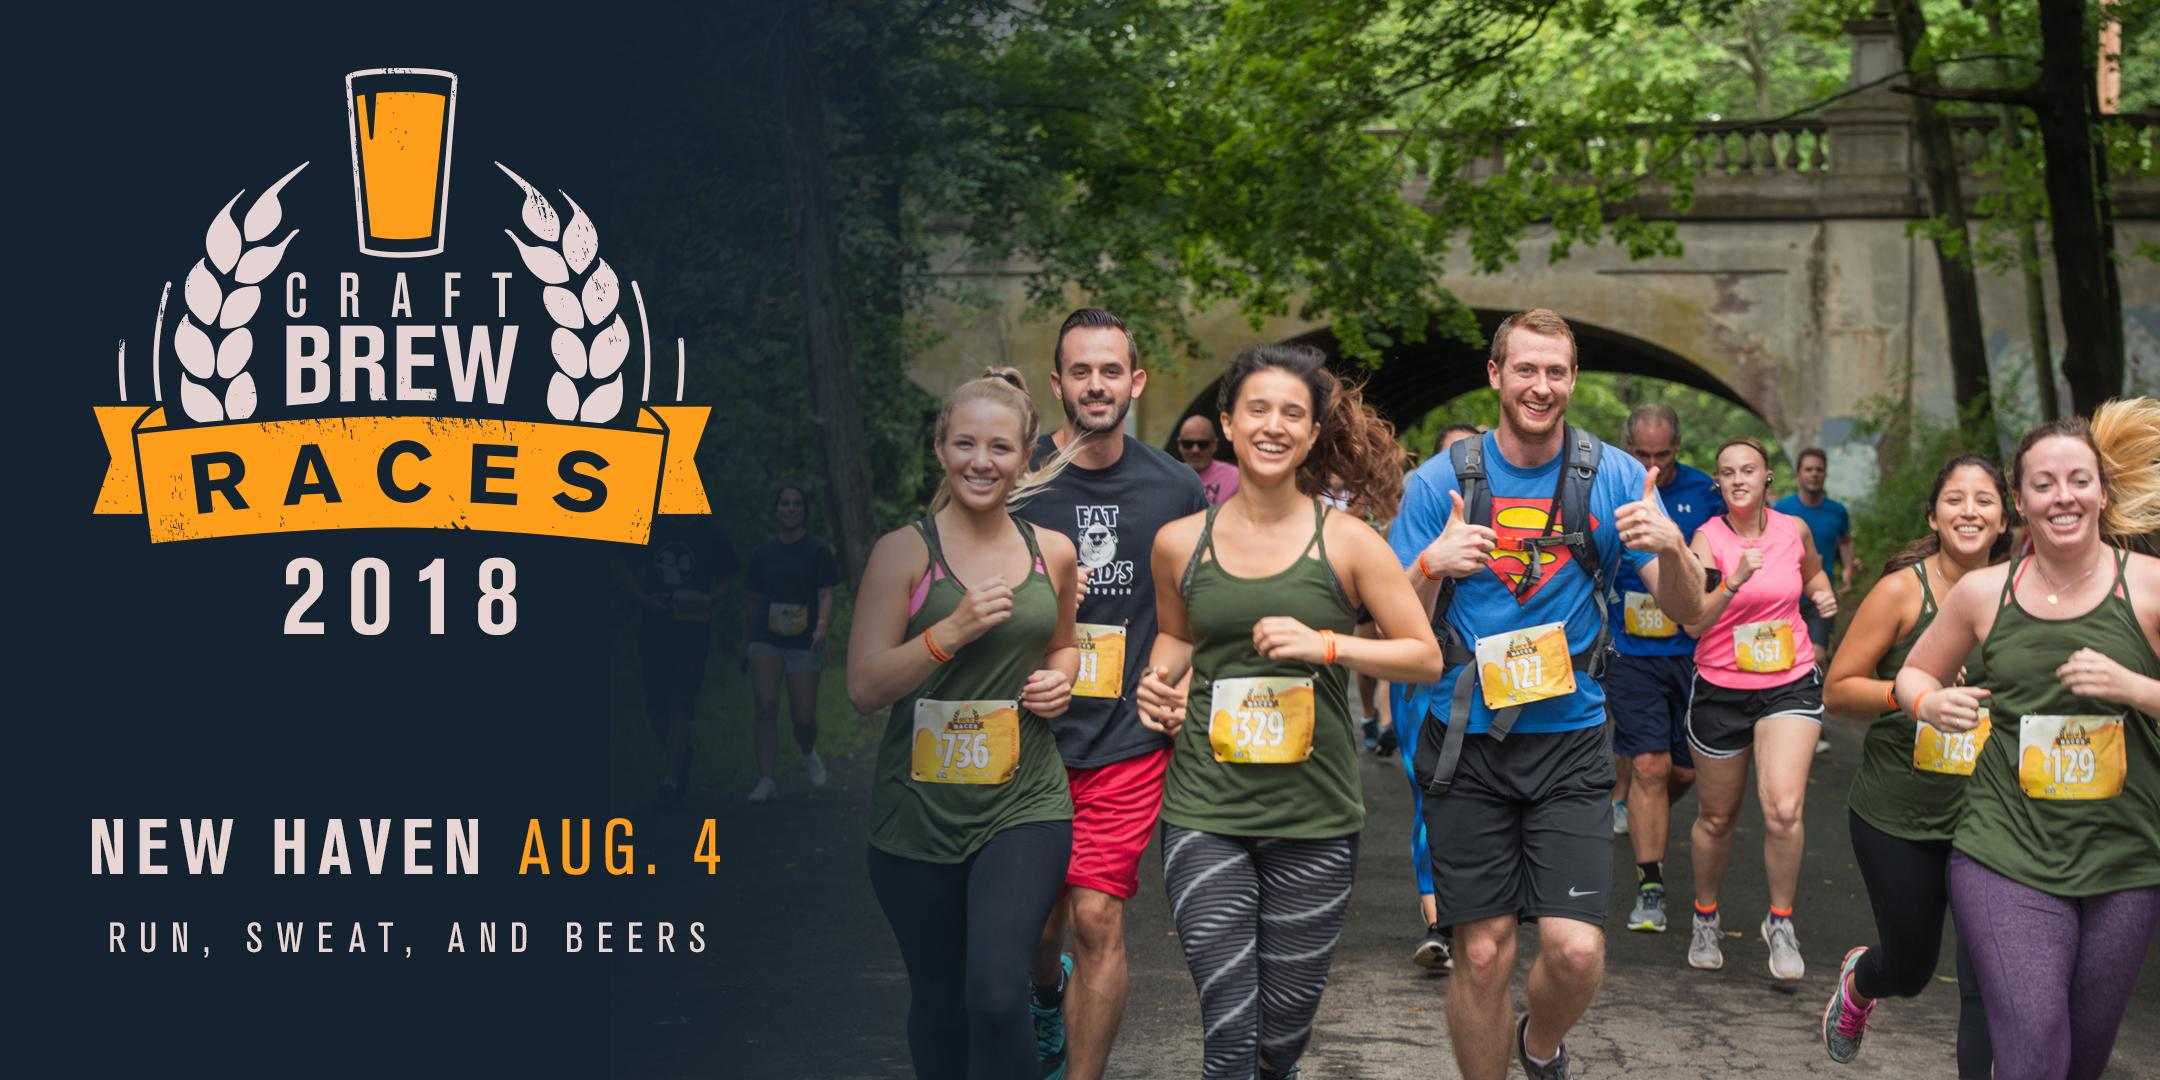 Craft Brew Races | New Haven 2018